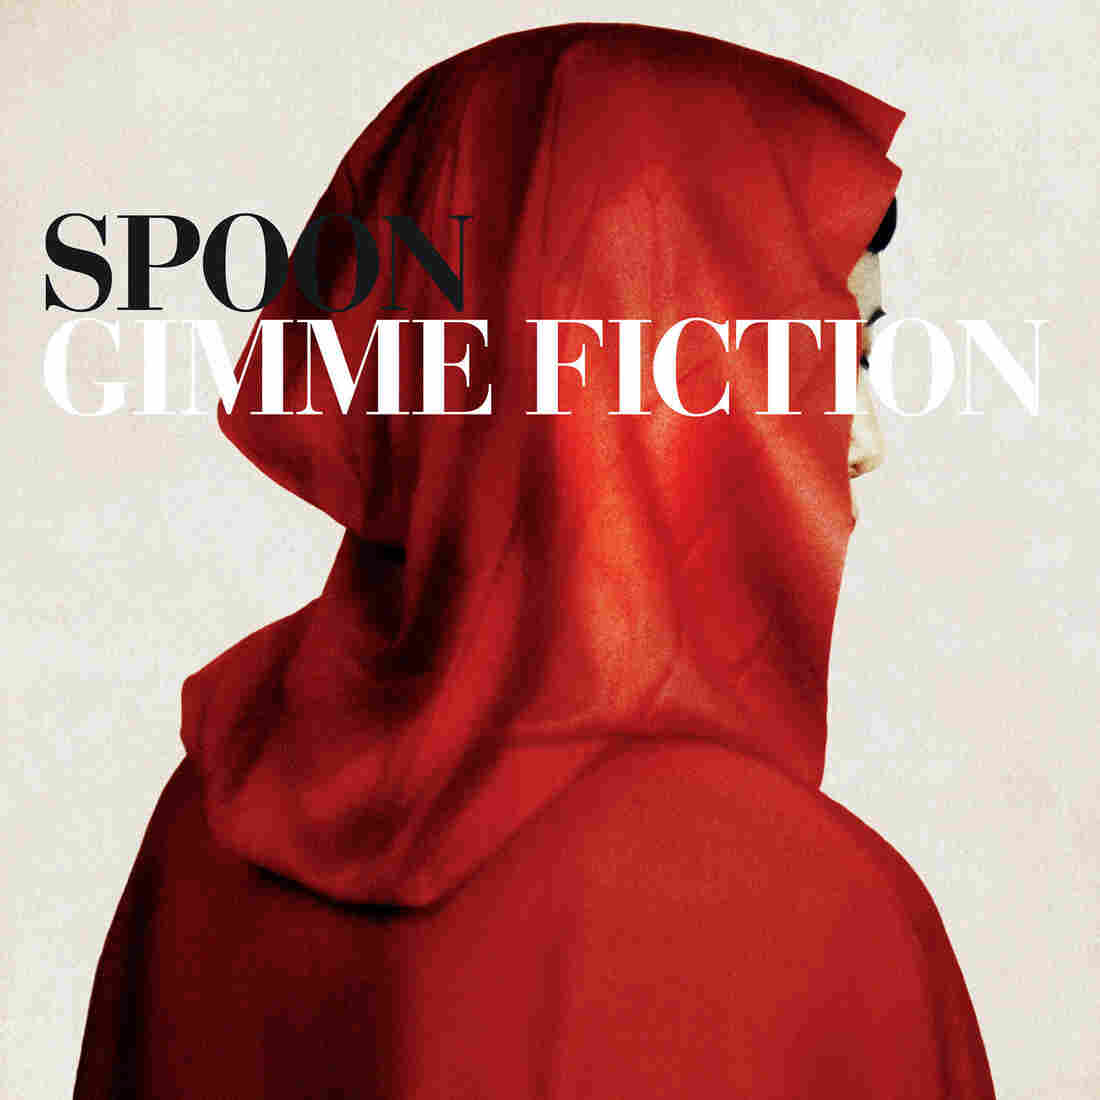 The cover art for Spoon's Gimme Fiction depicts a mysterious figure based on Red Riding Hood.